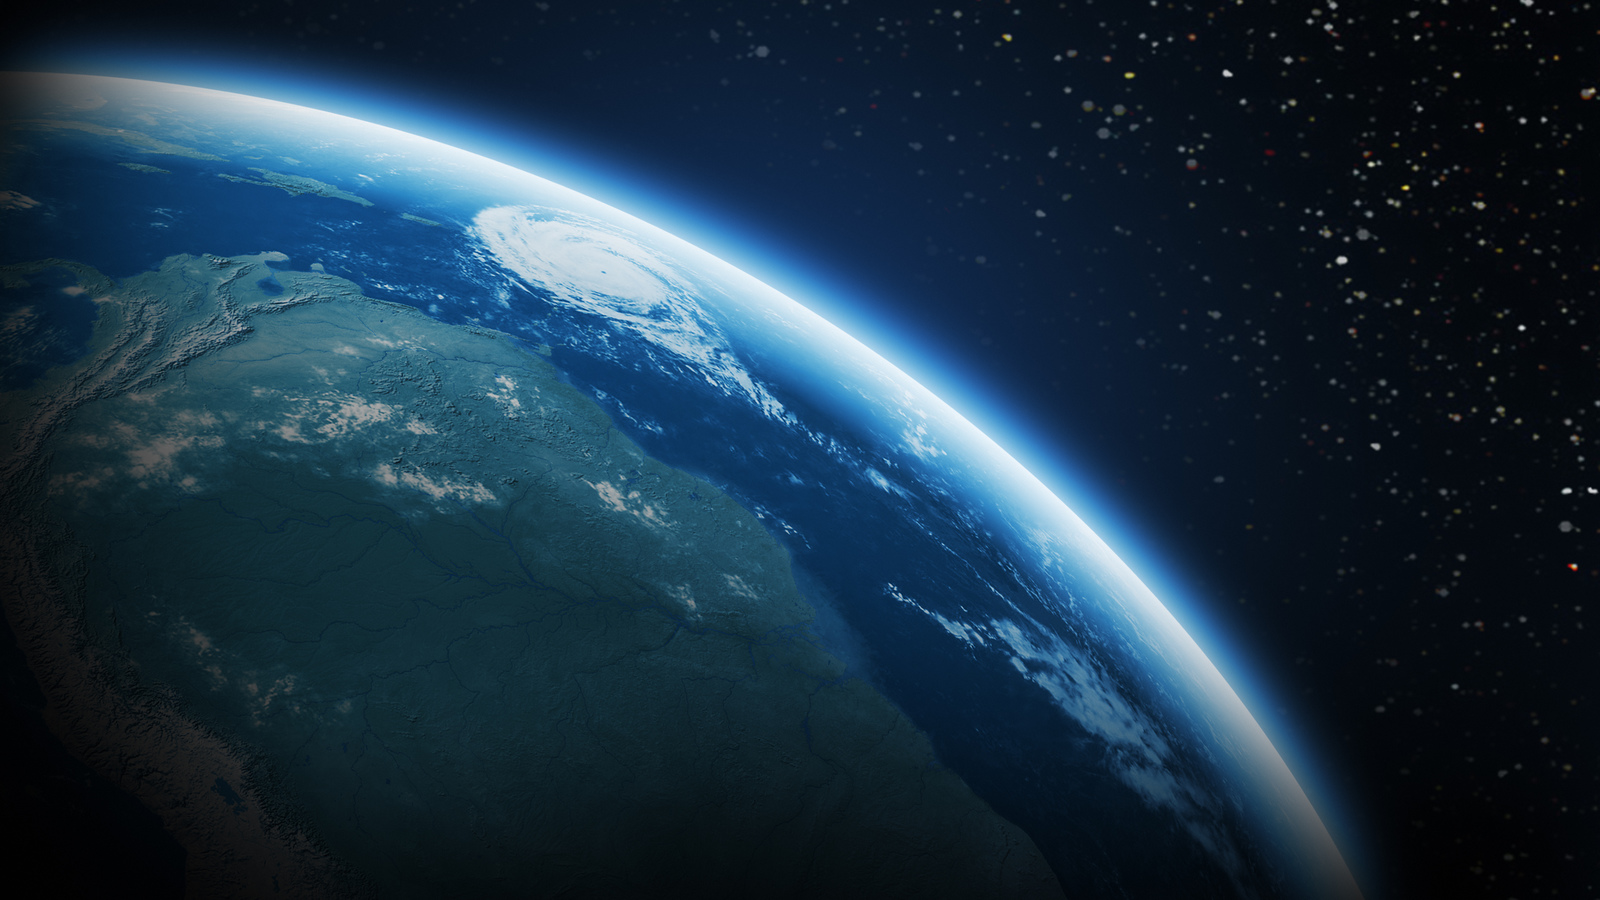 About How Many People Can Live on Planet Earth? | How Many